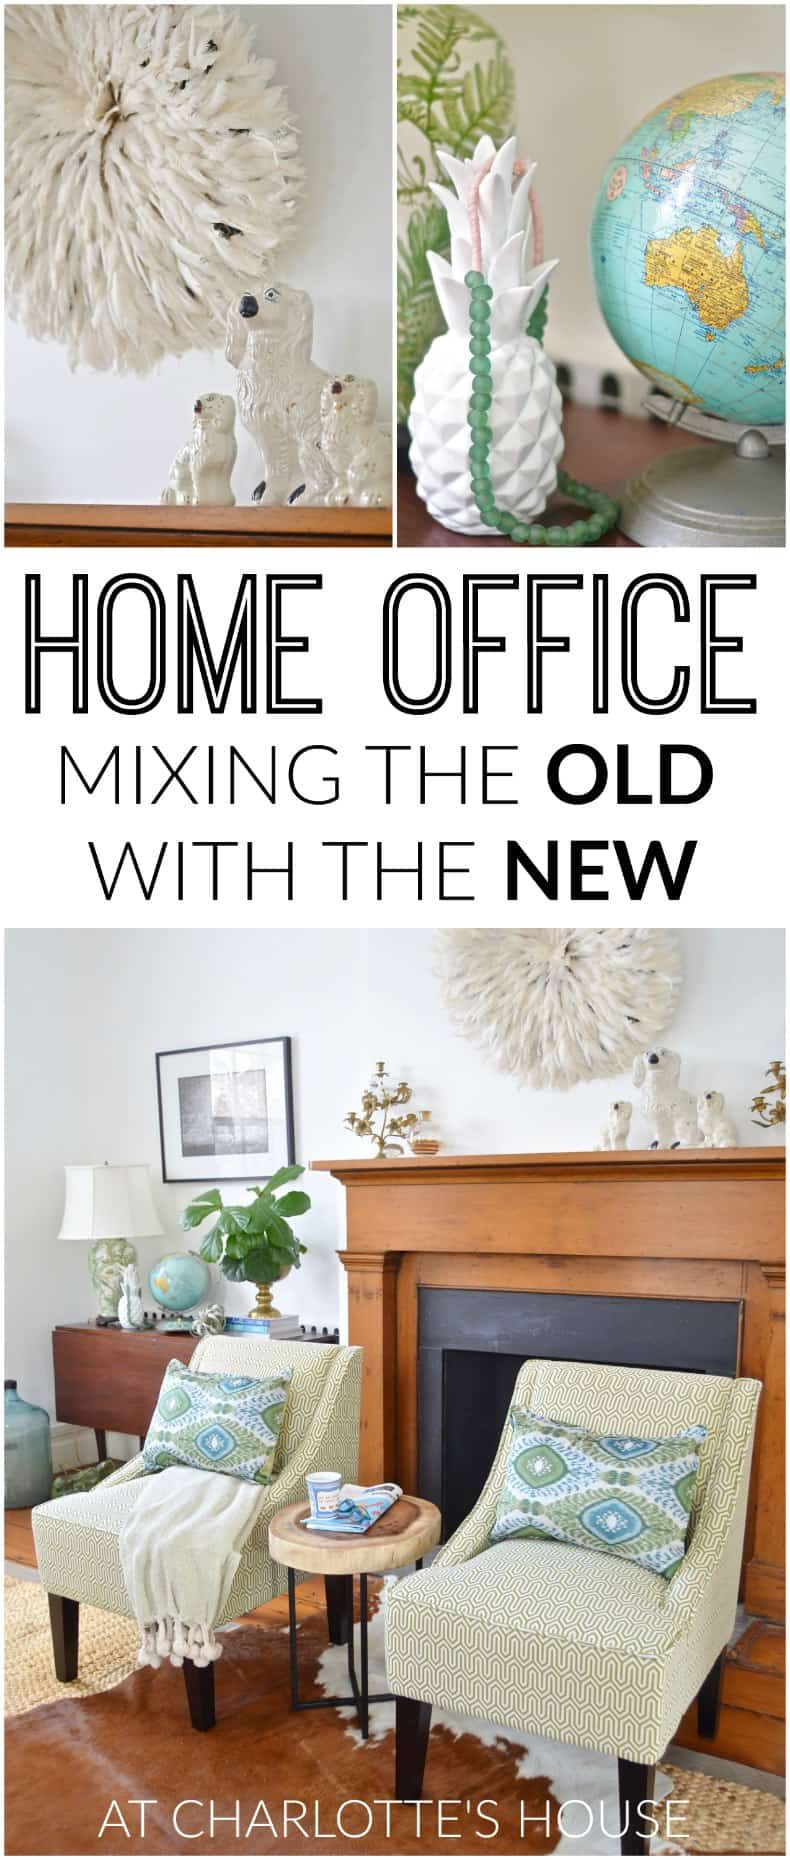 Mixing the old with the new in our home office! #ad #KohlsHome and @kohls